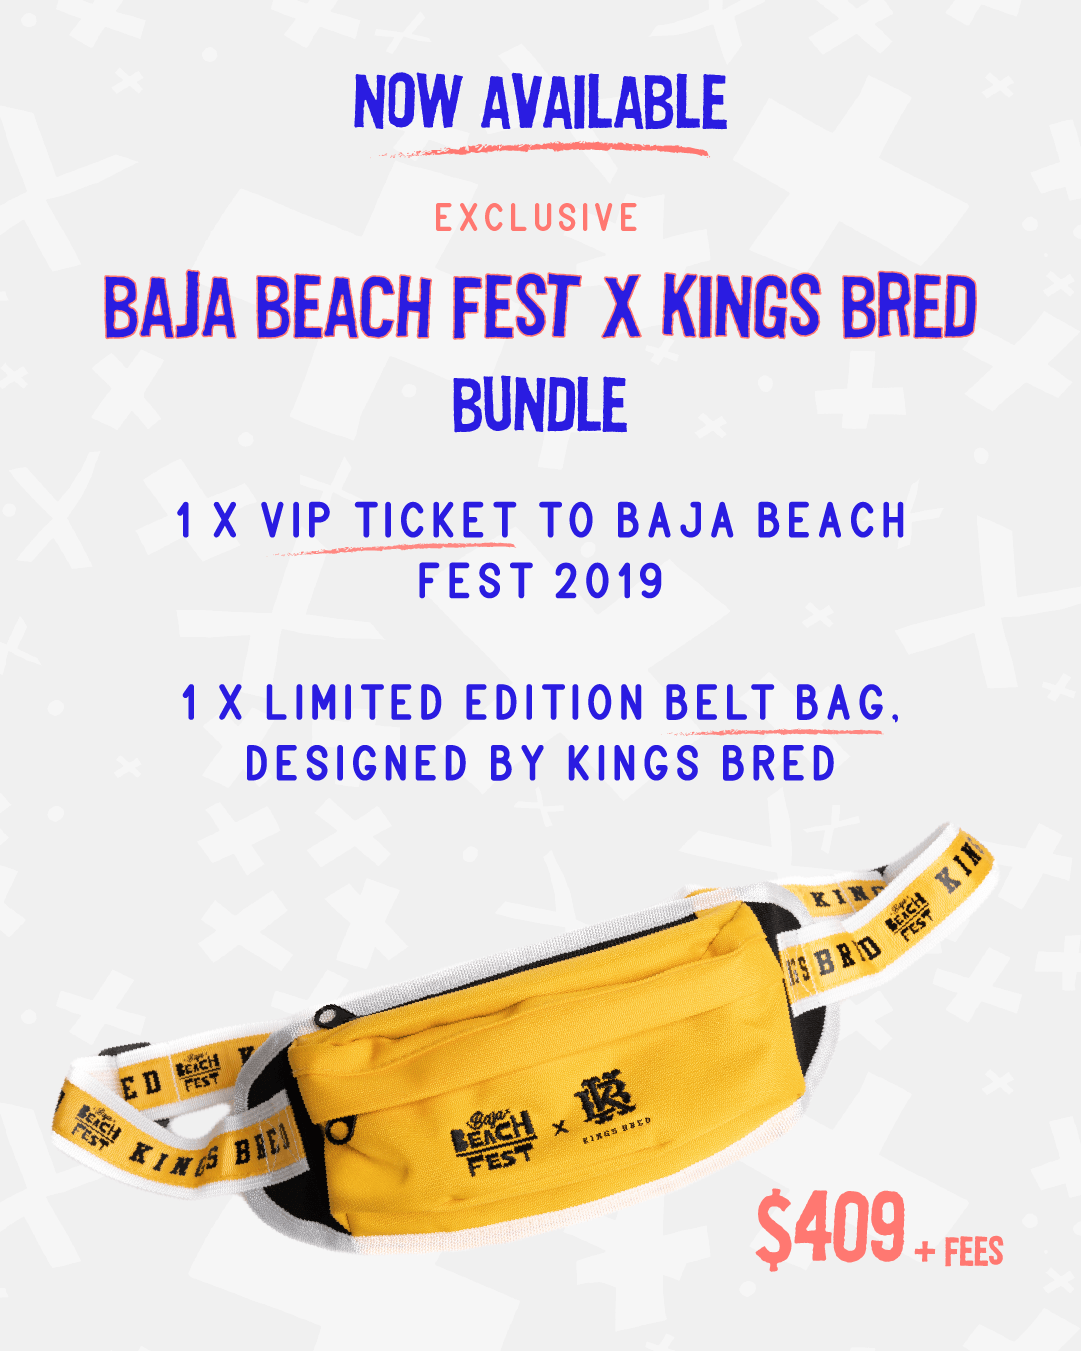 Baja Beach Fest Connects with Kings Bred for a Limited Edition Festival Fanny Pack